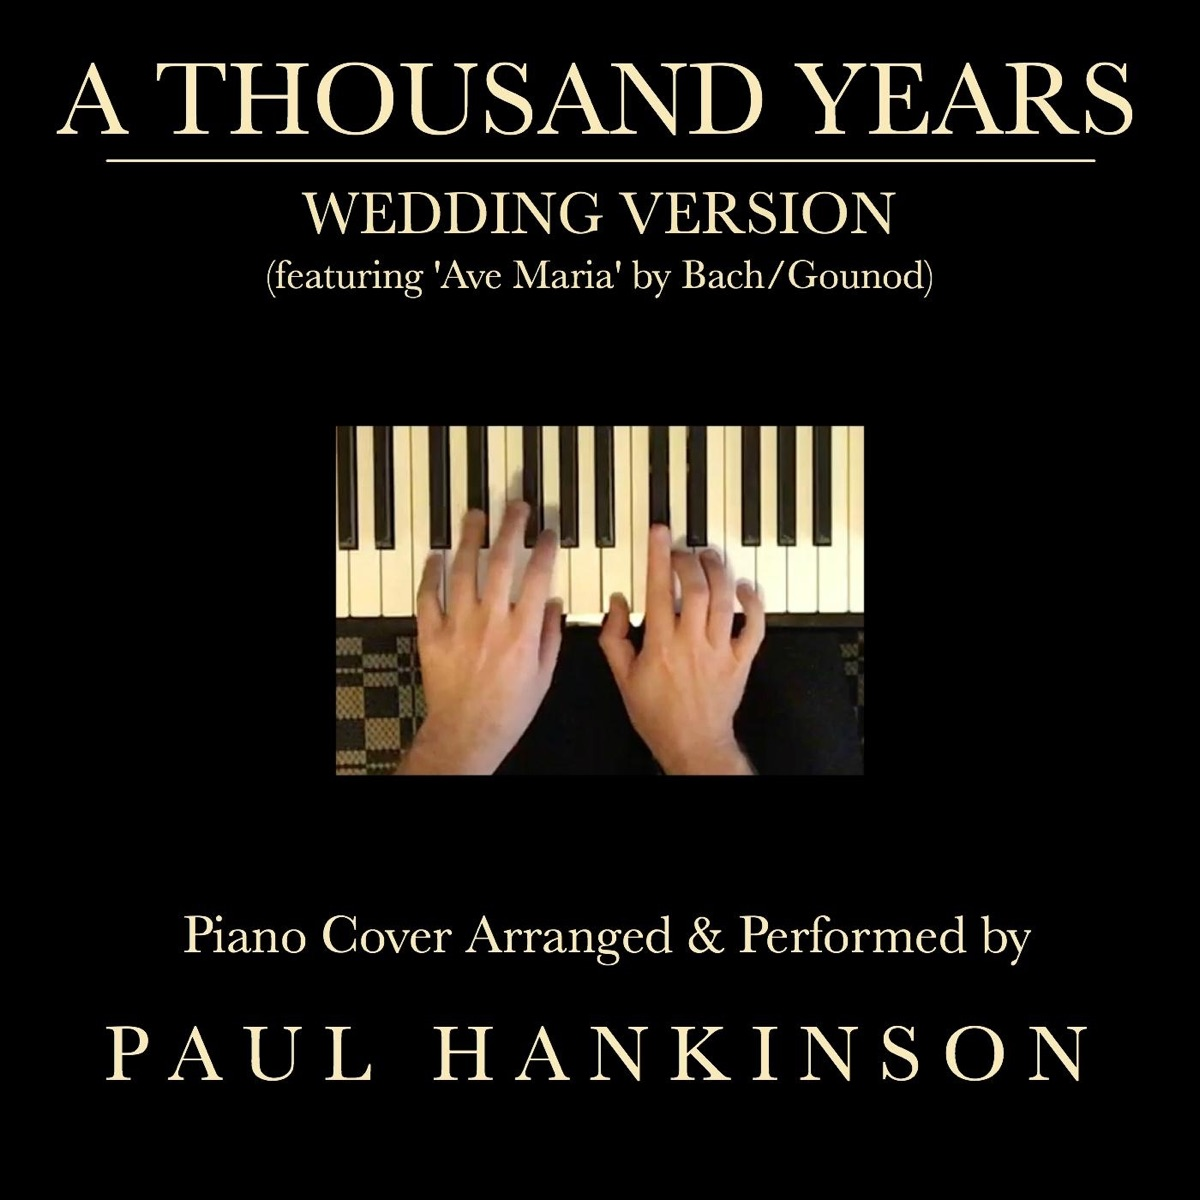 A Thousand Years Wedding Version - Single Paul Hankinson CD cover